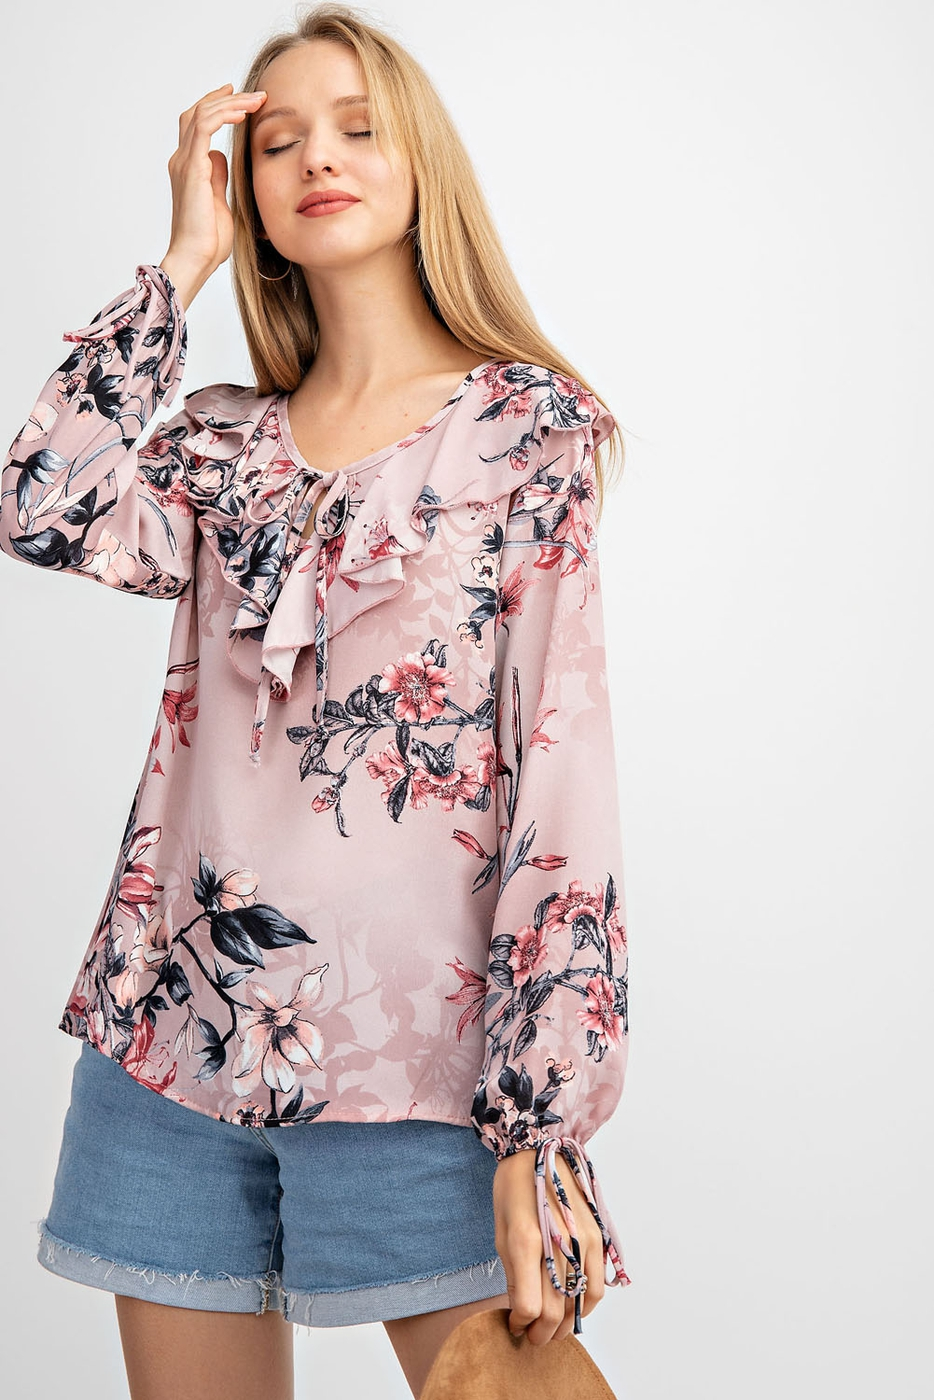 FLORAL PRINTED WOVEN TOP - orangeshine.com